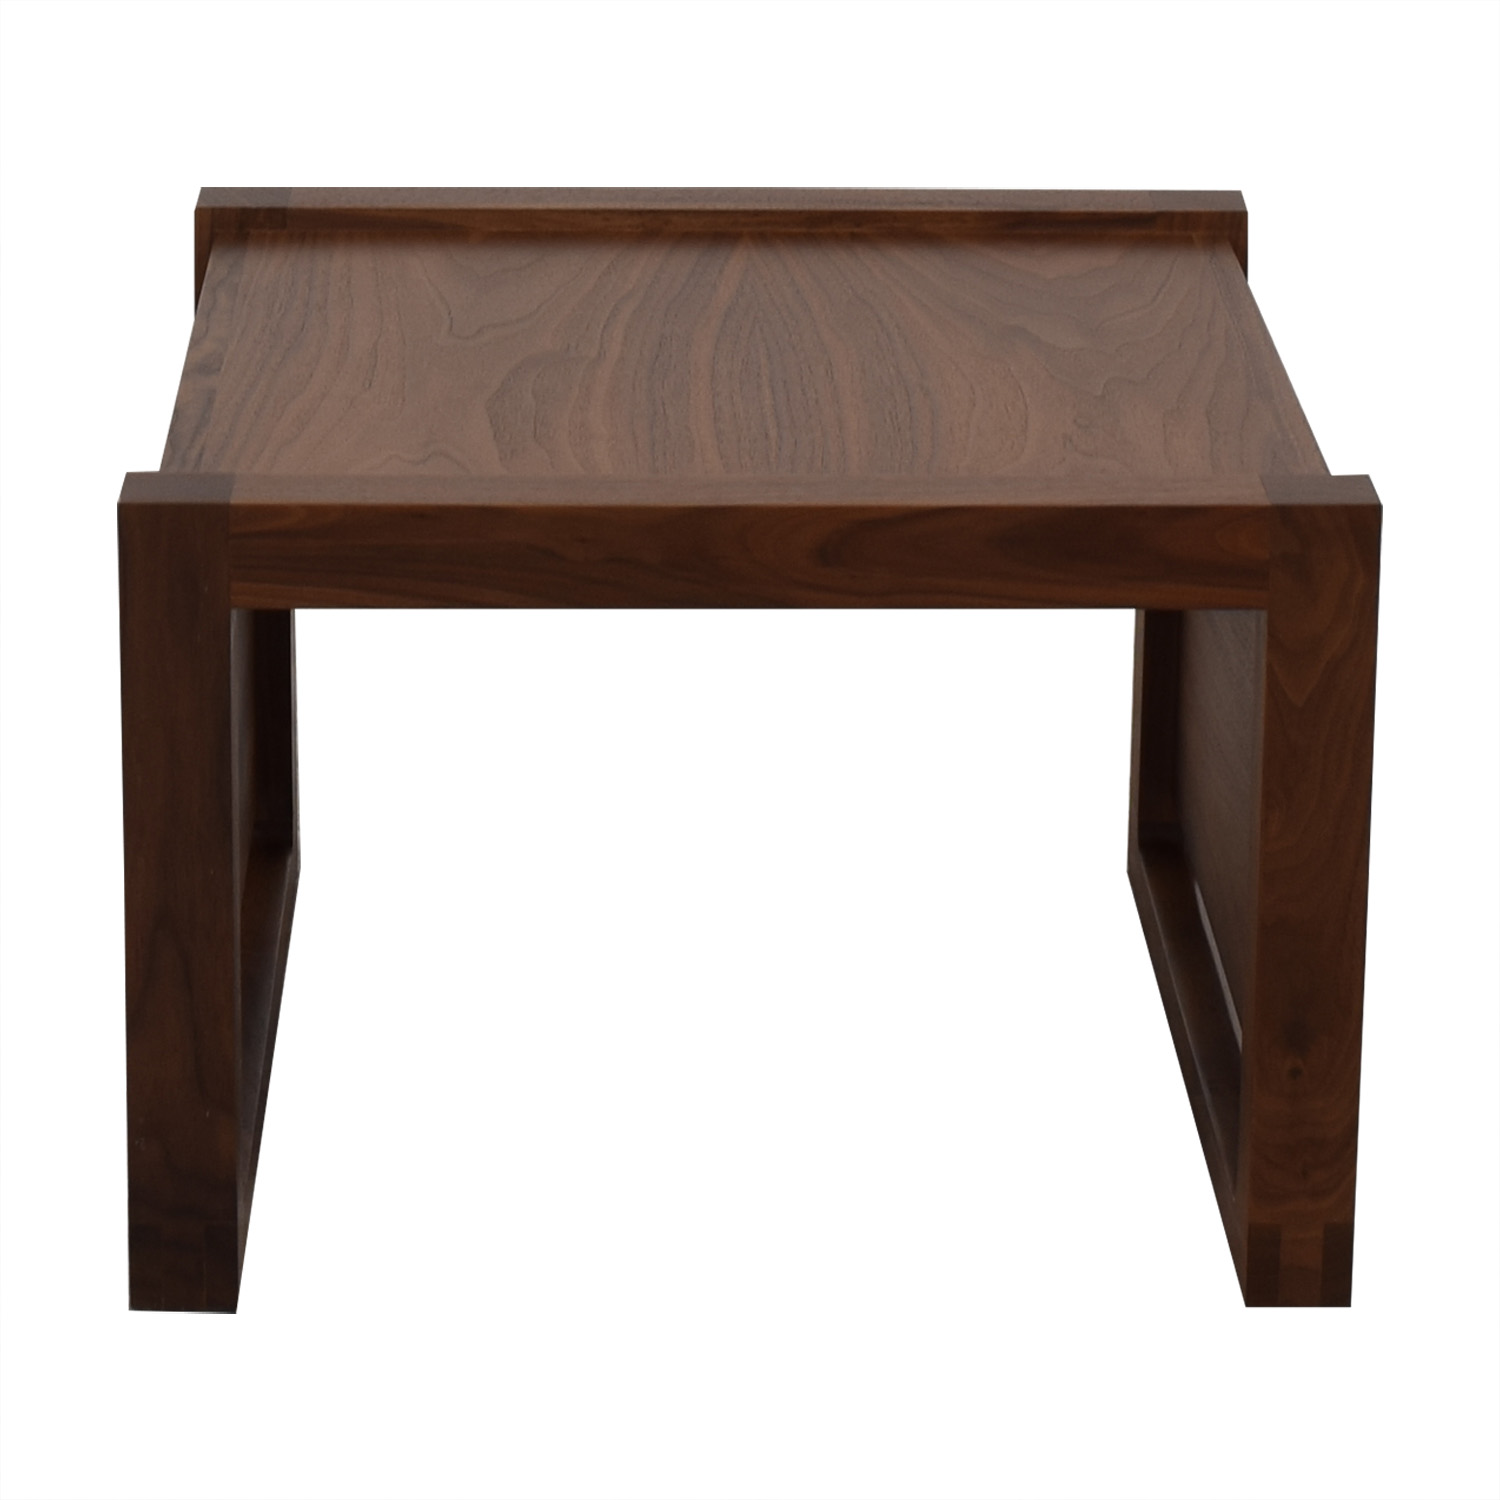 Small End Table brown